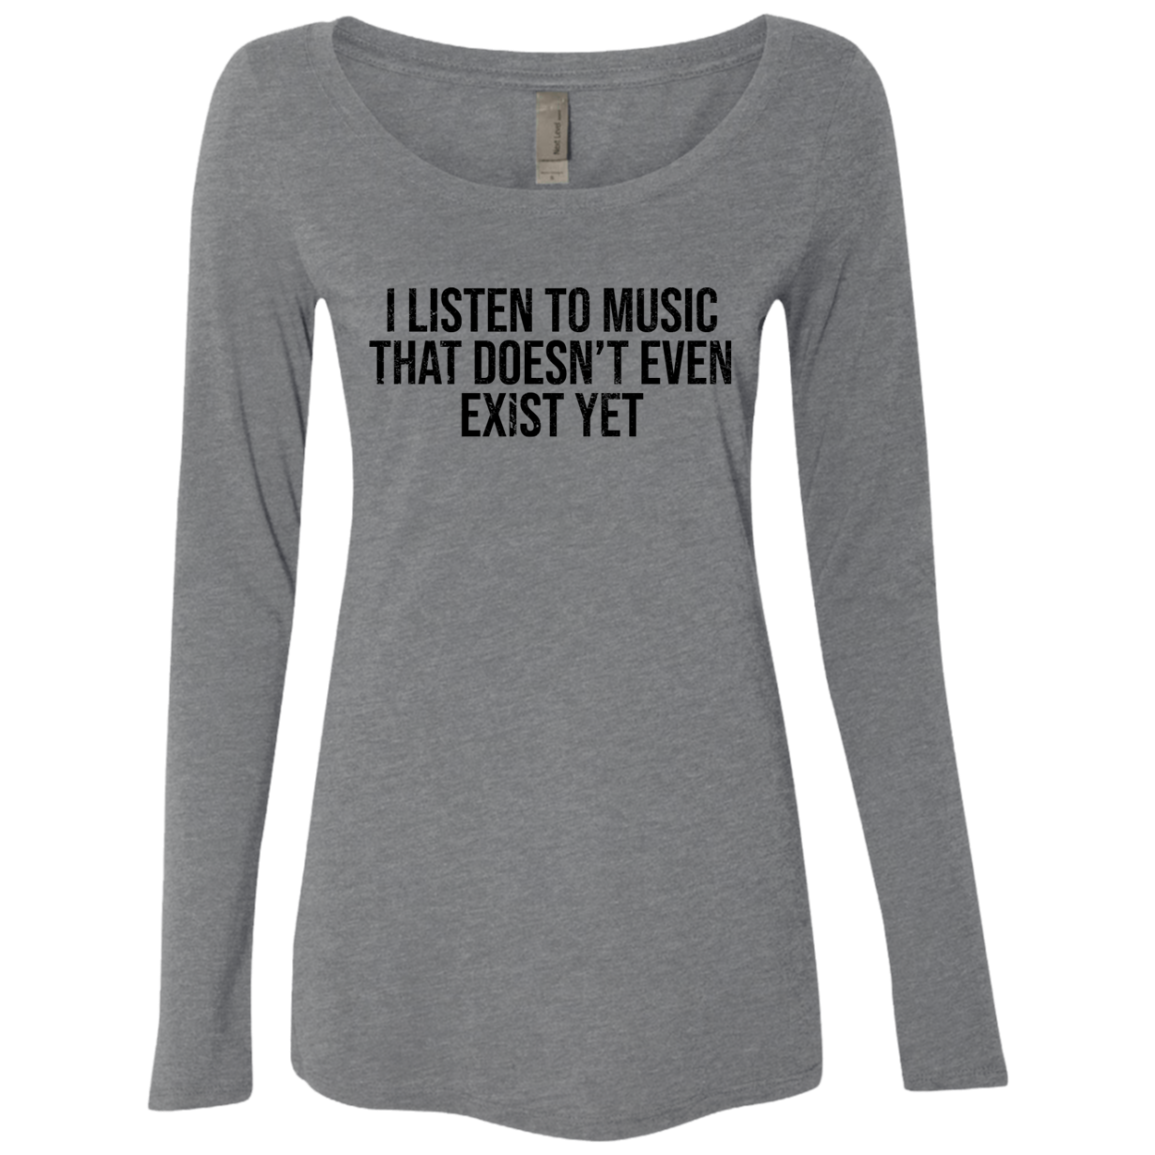 I Listen To Music That Doesn't Exist Yet Women's Long Sleeve Tee